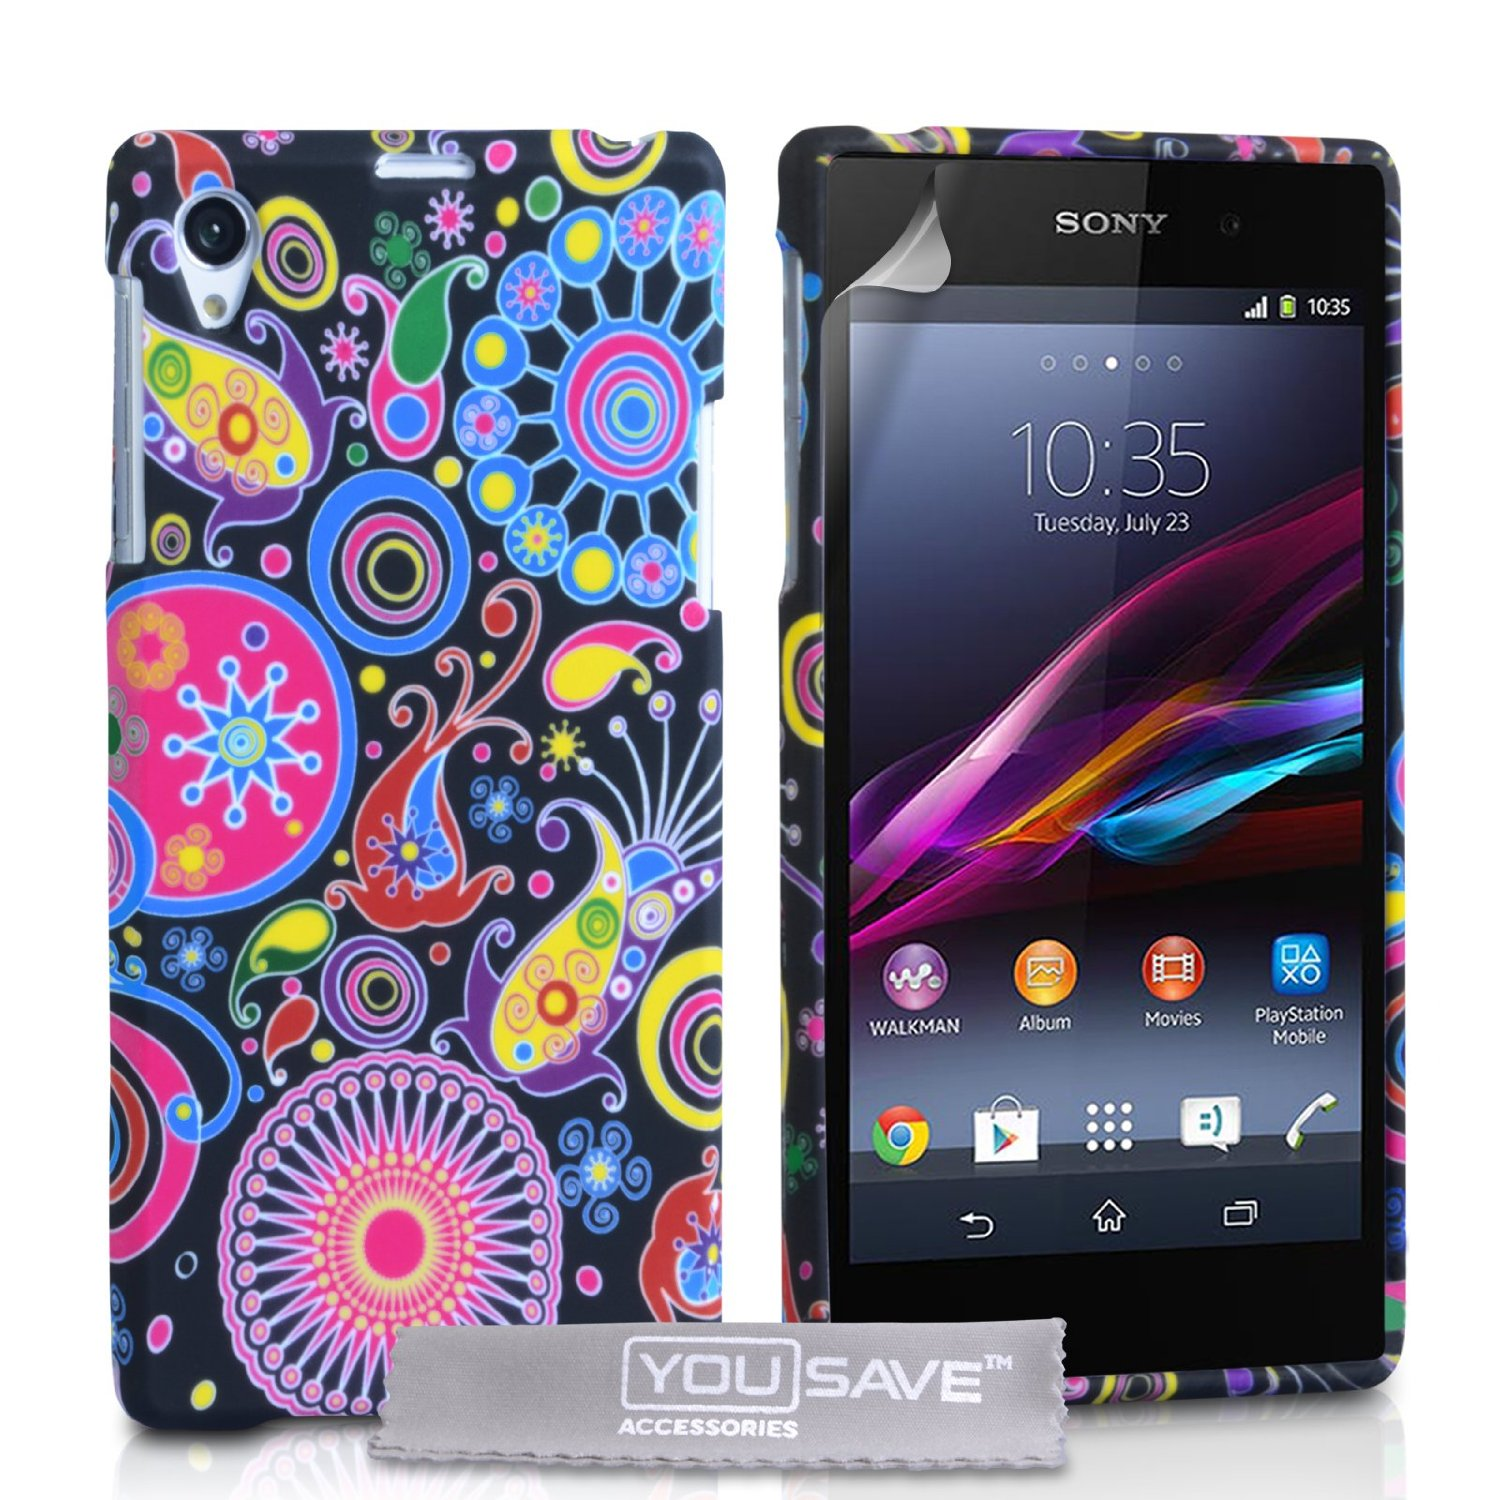 cheap for discount 780d7 90516 YouSave Accessories Sony Xperia Z1 Jellyfish Silicone Gel Case